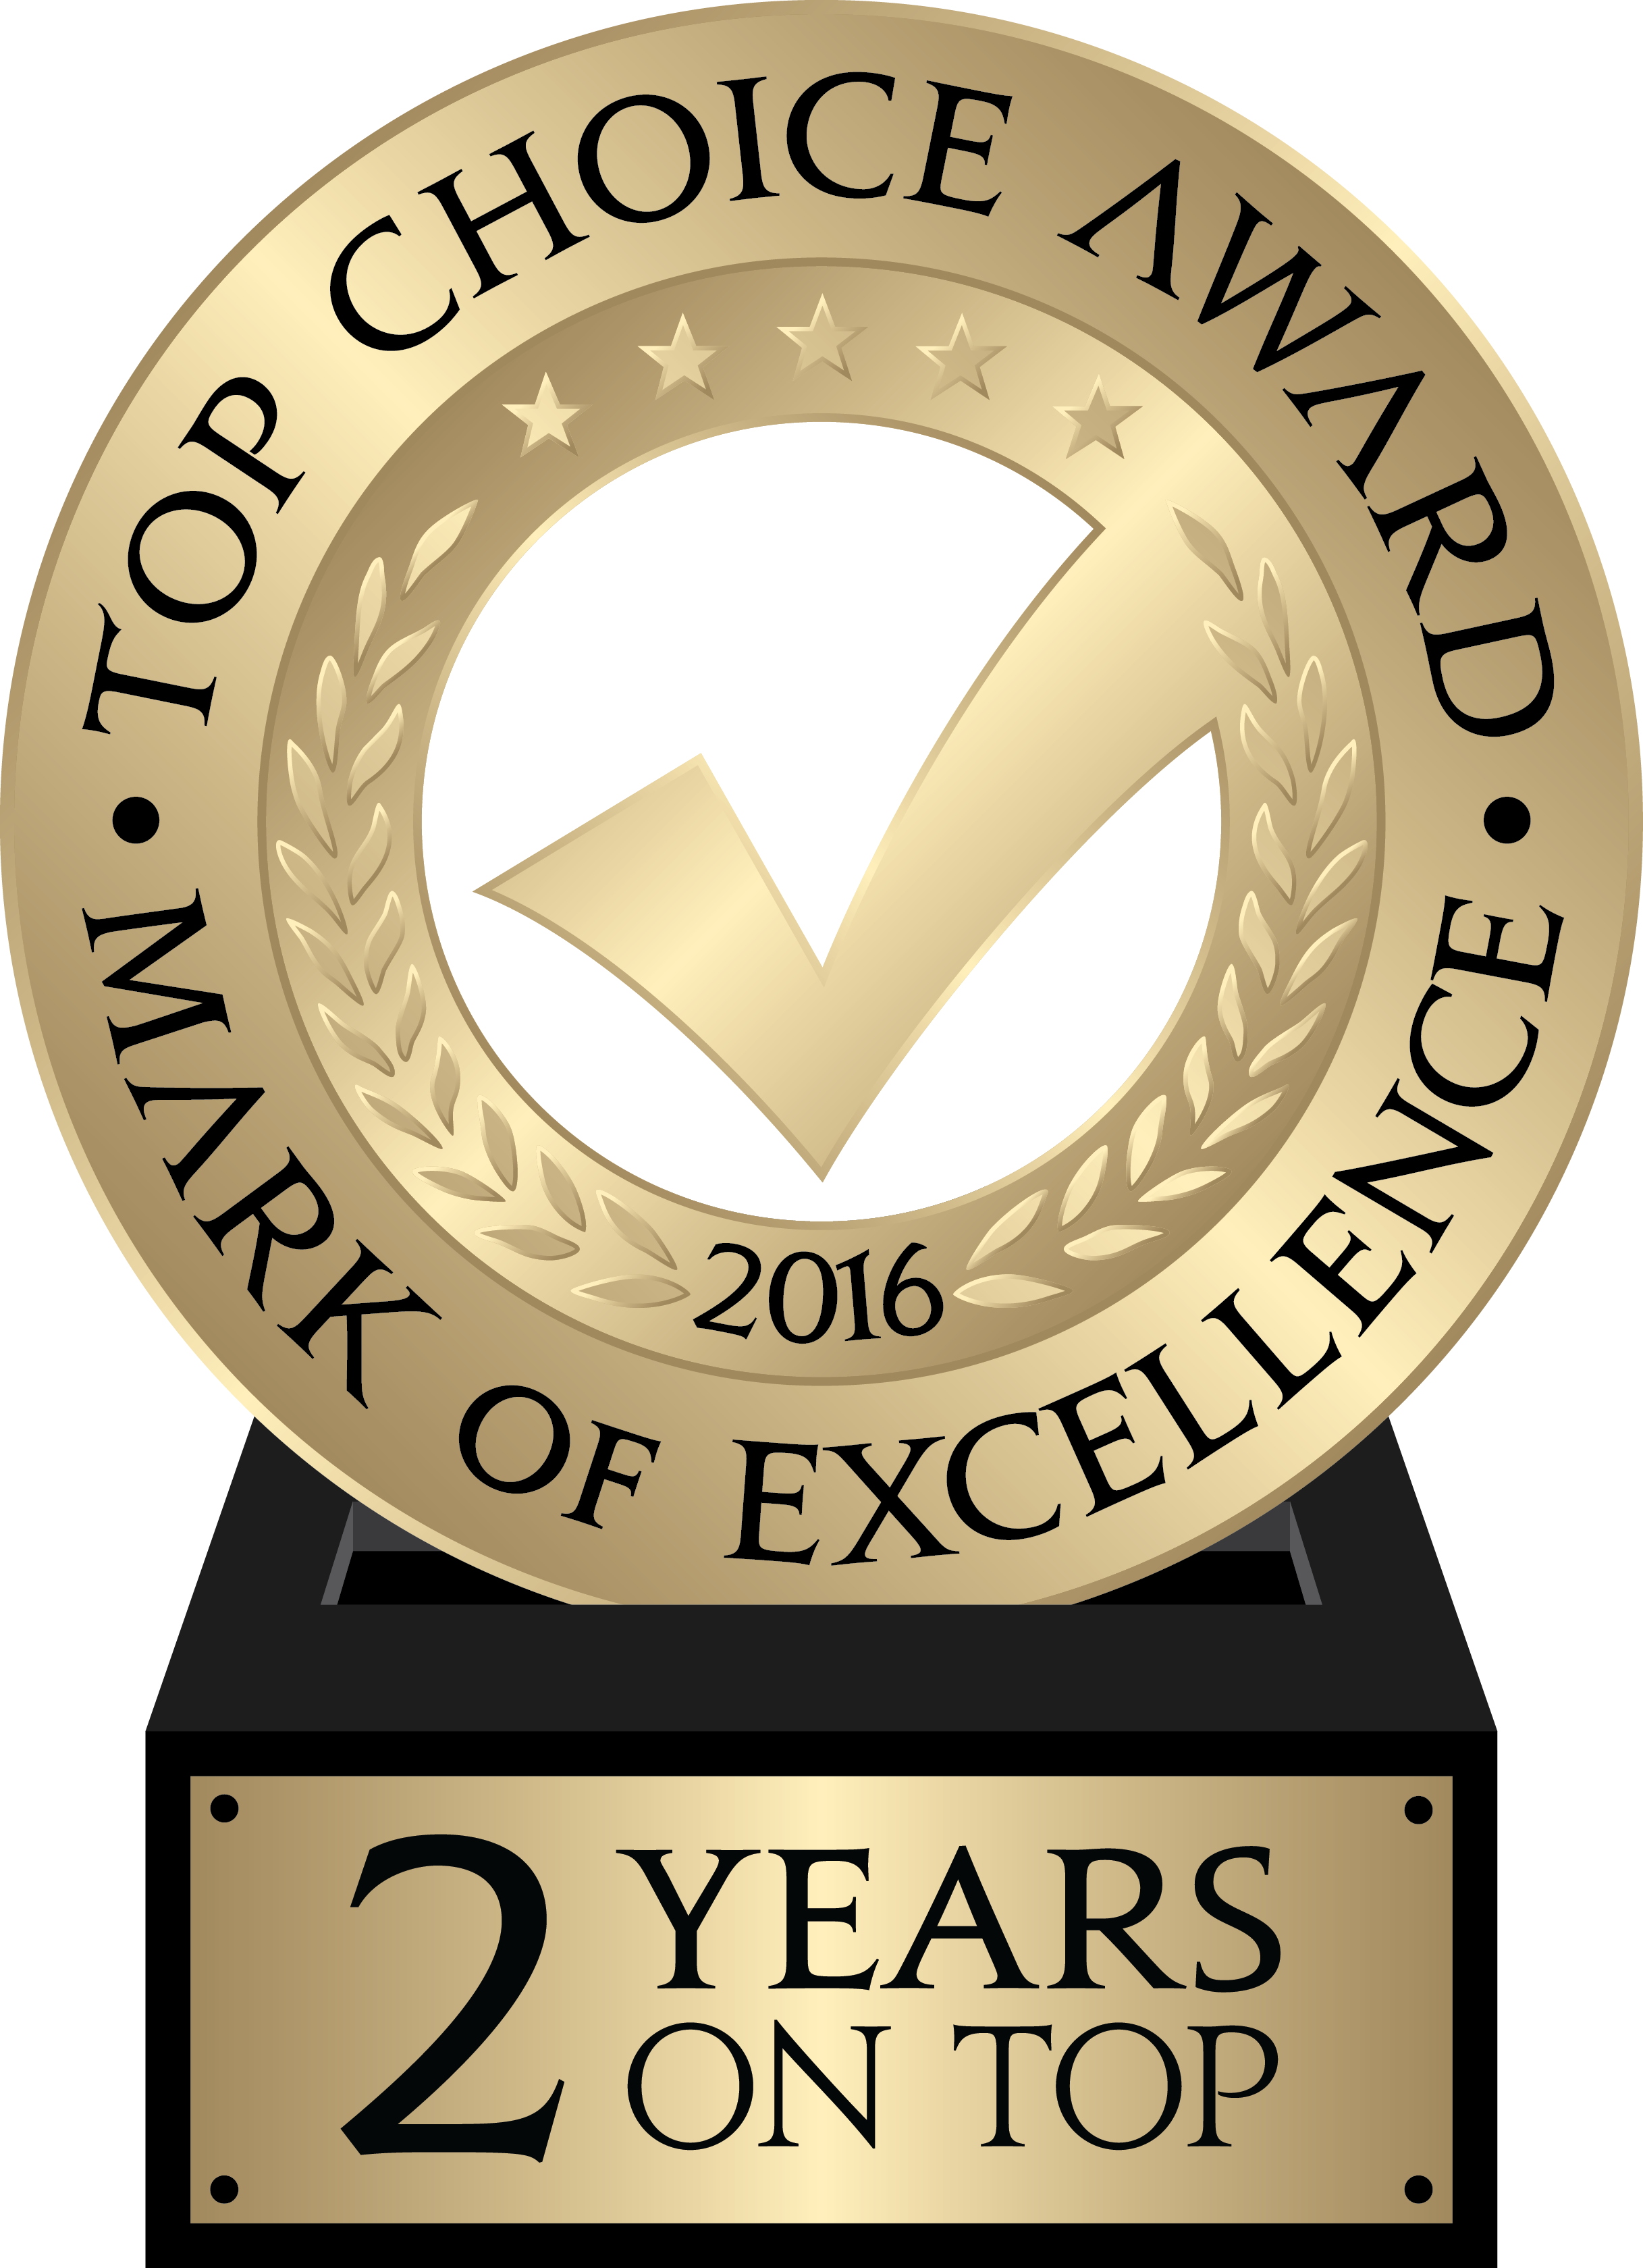 TopChoiceAwards_logo_year_2015_Colour